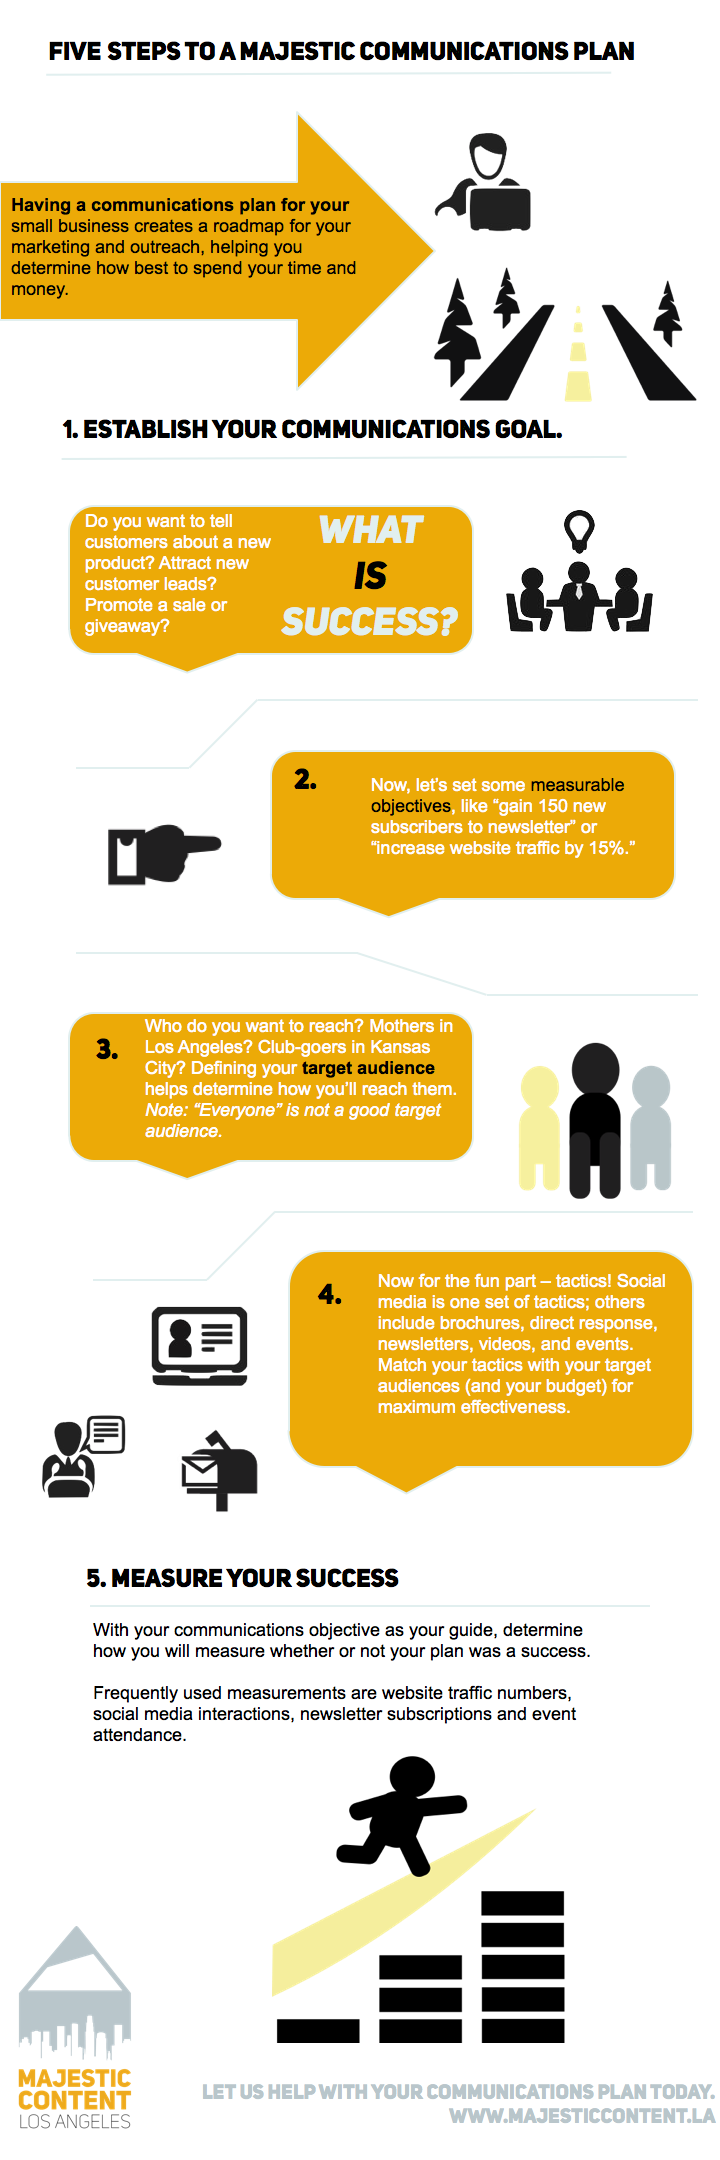 5 Steps to Majestic Communications Plan